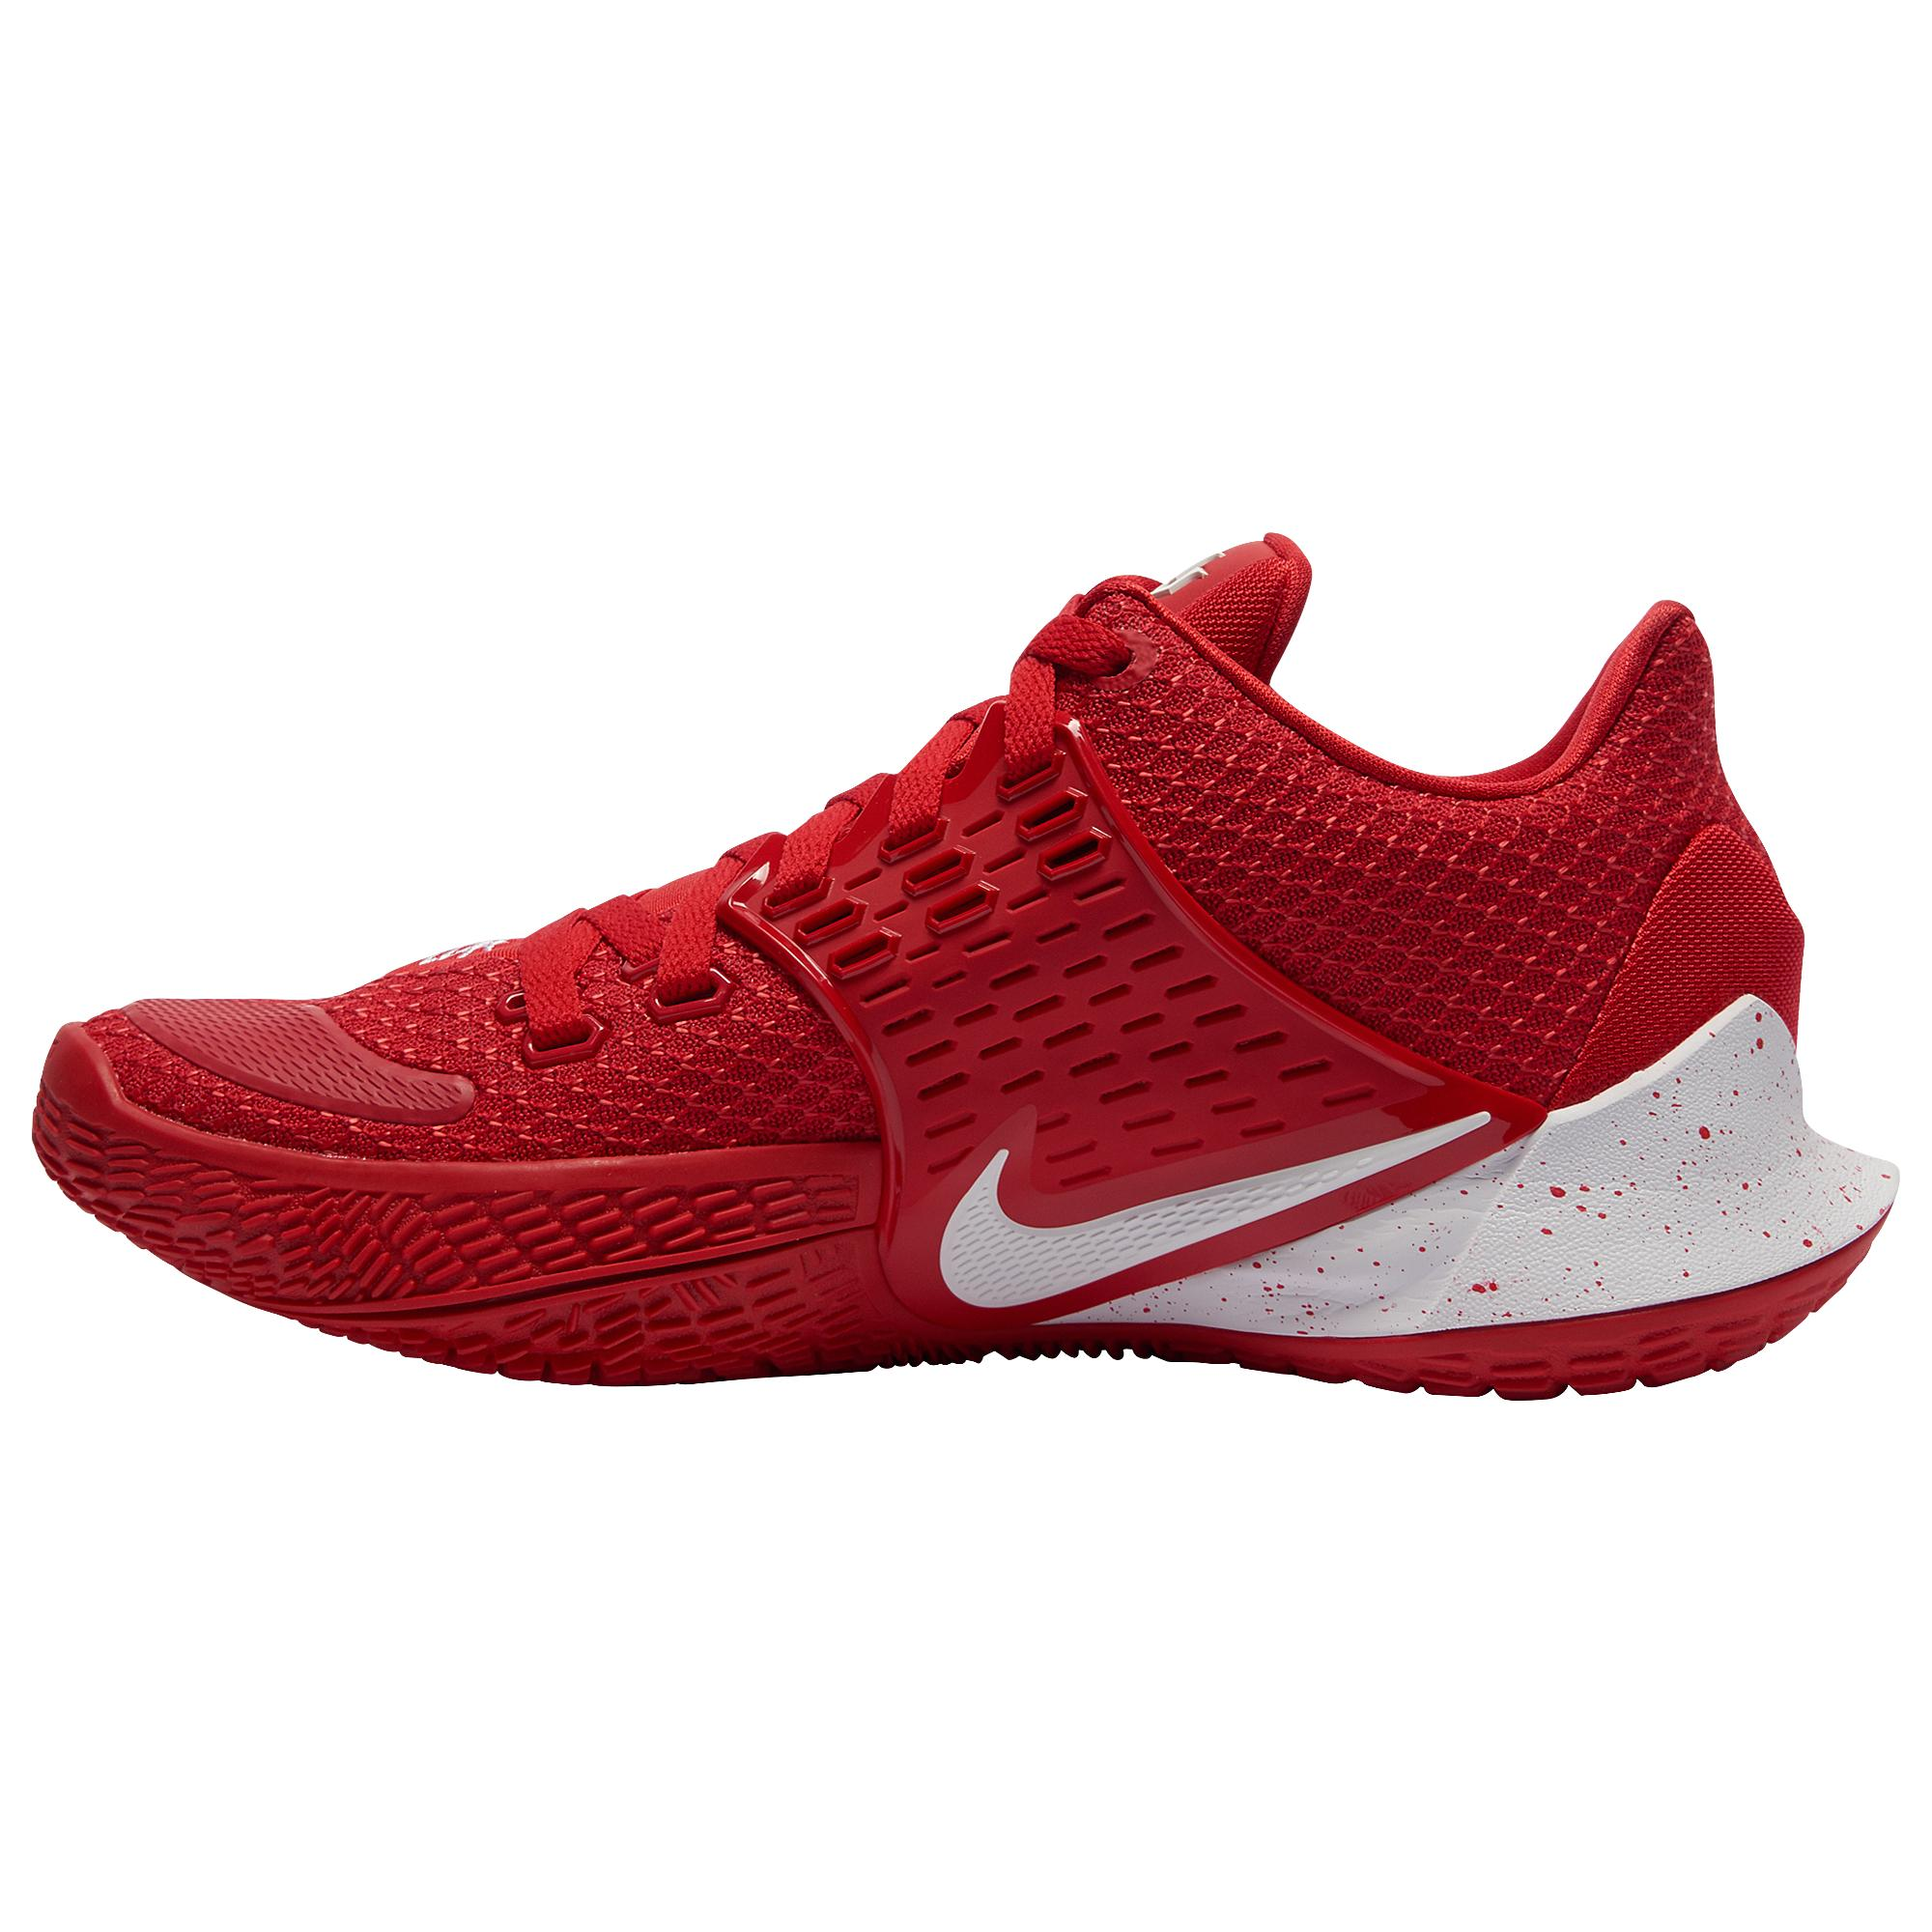 kyrie low red